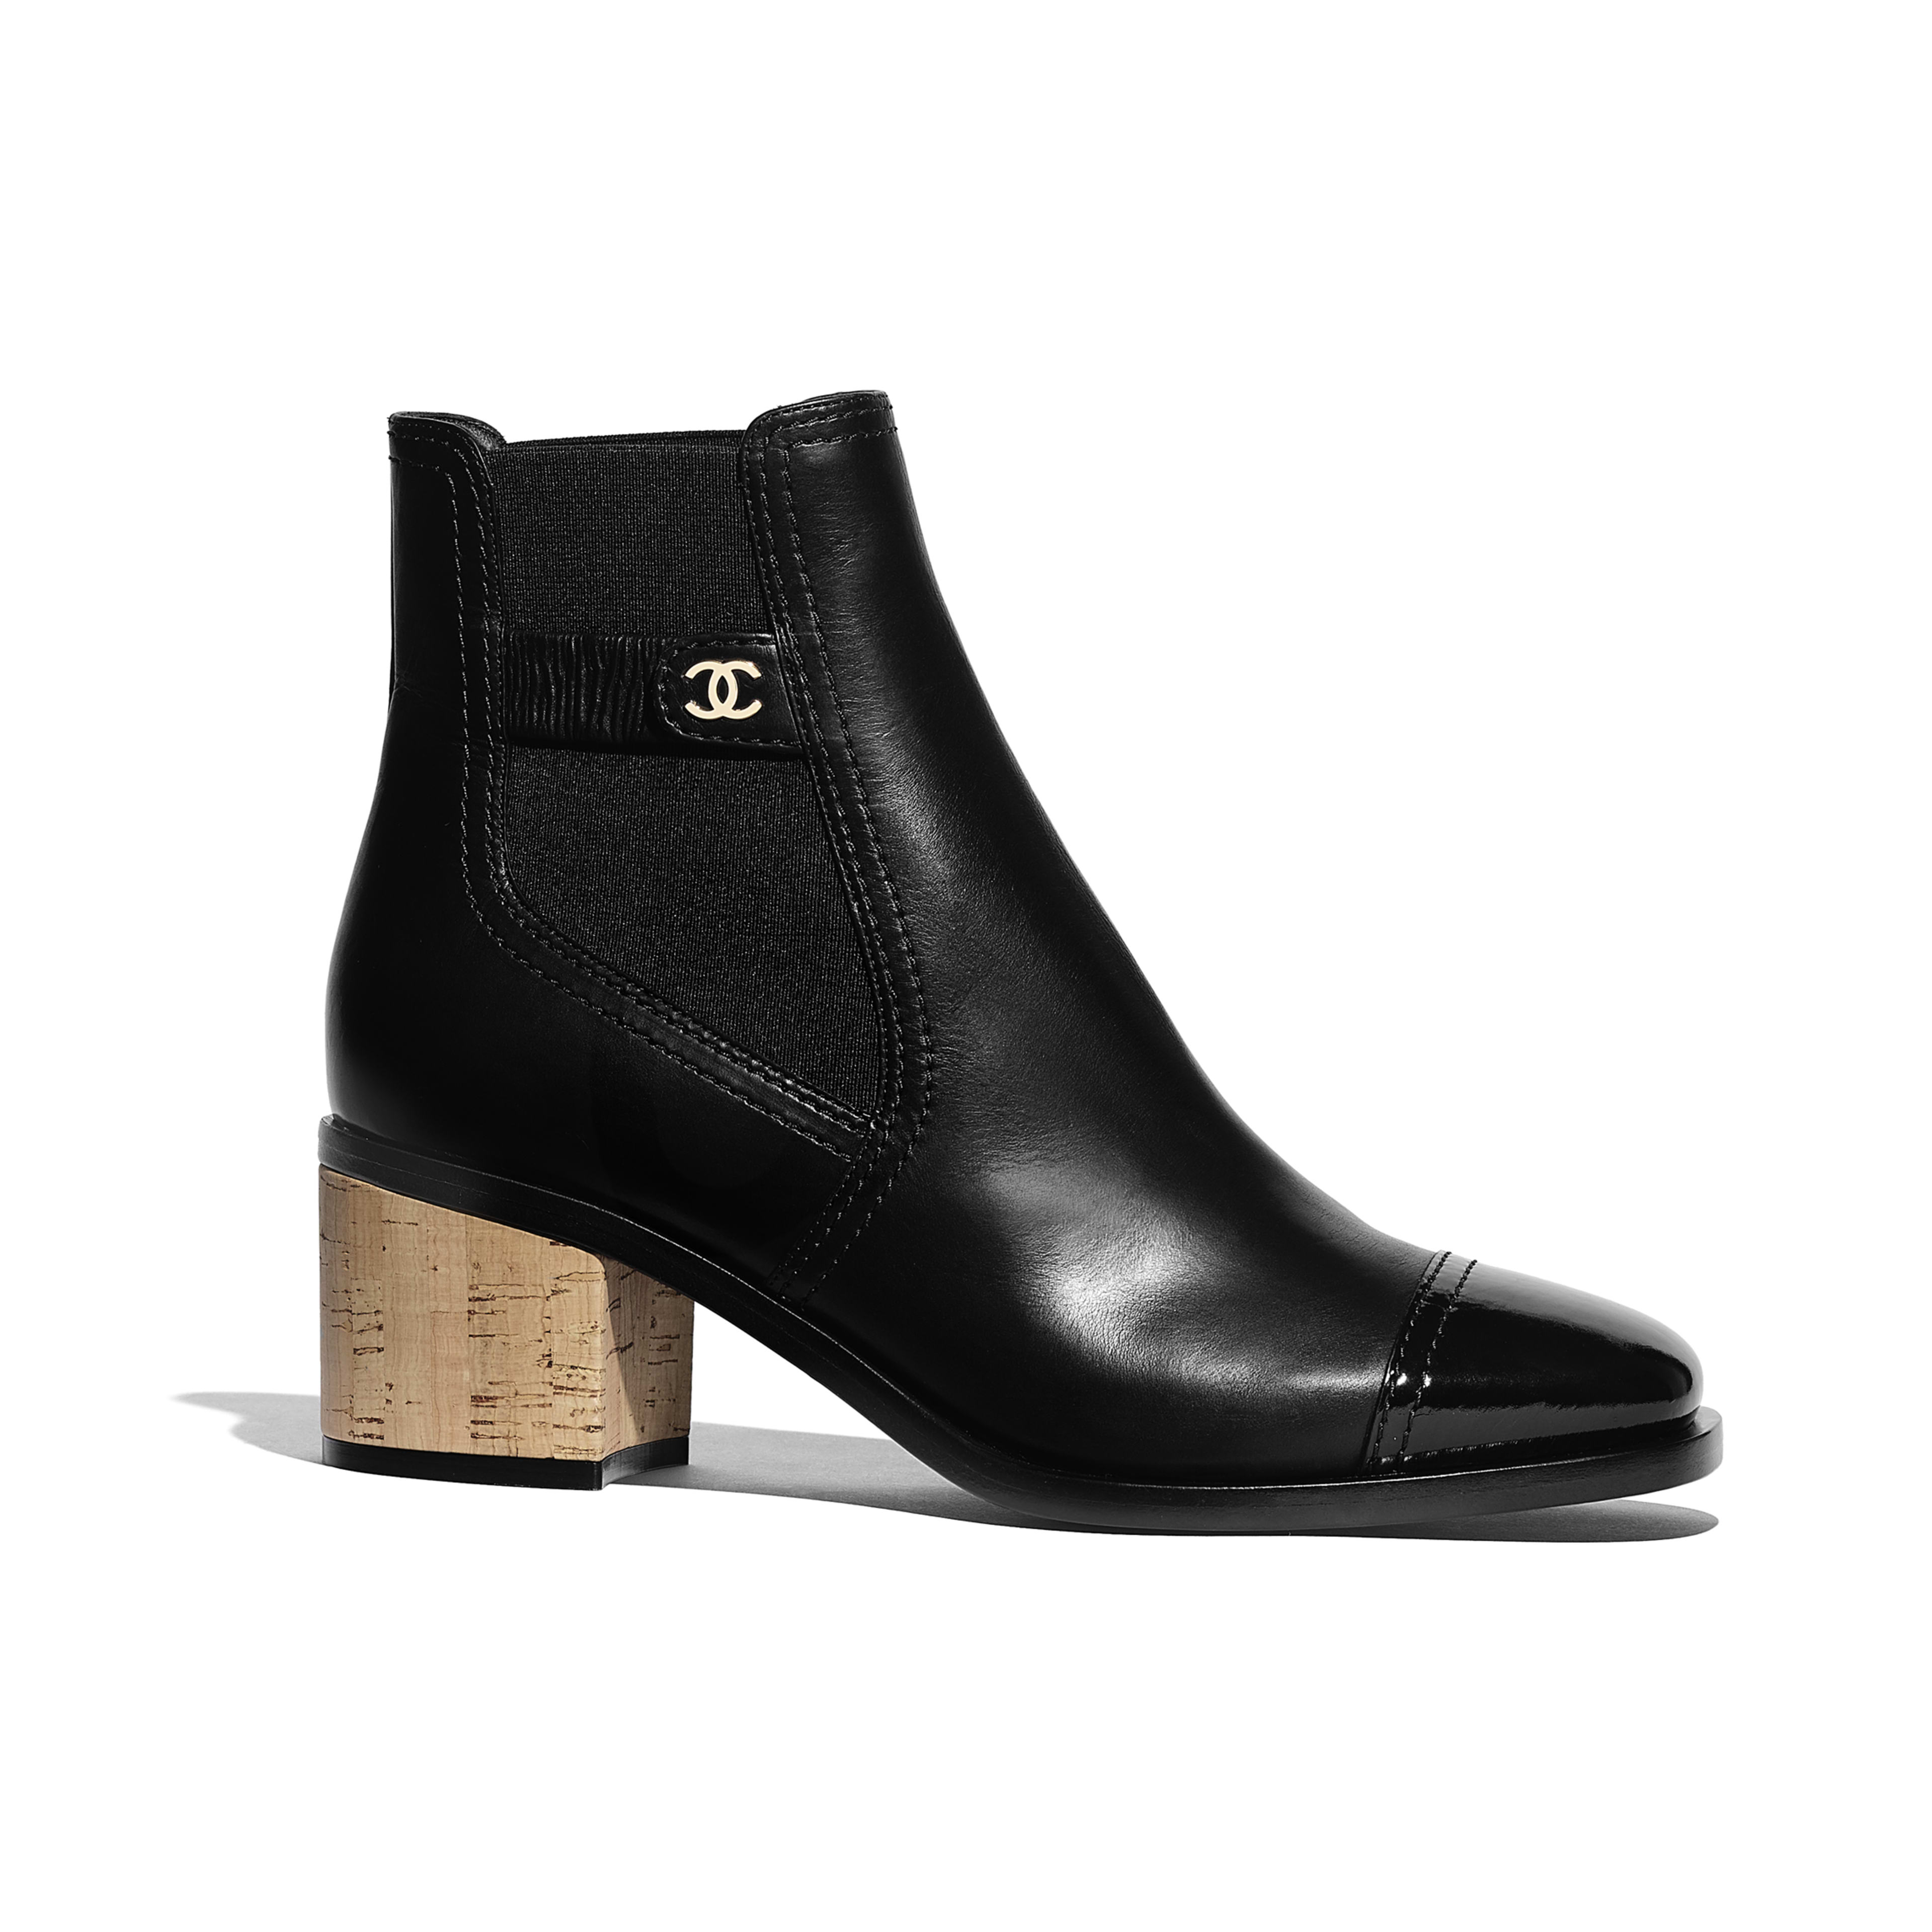 Ankle Boots - Black - Calfskin, Patent Calfskin & Cork - Default view - see full sized version